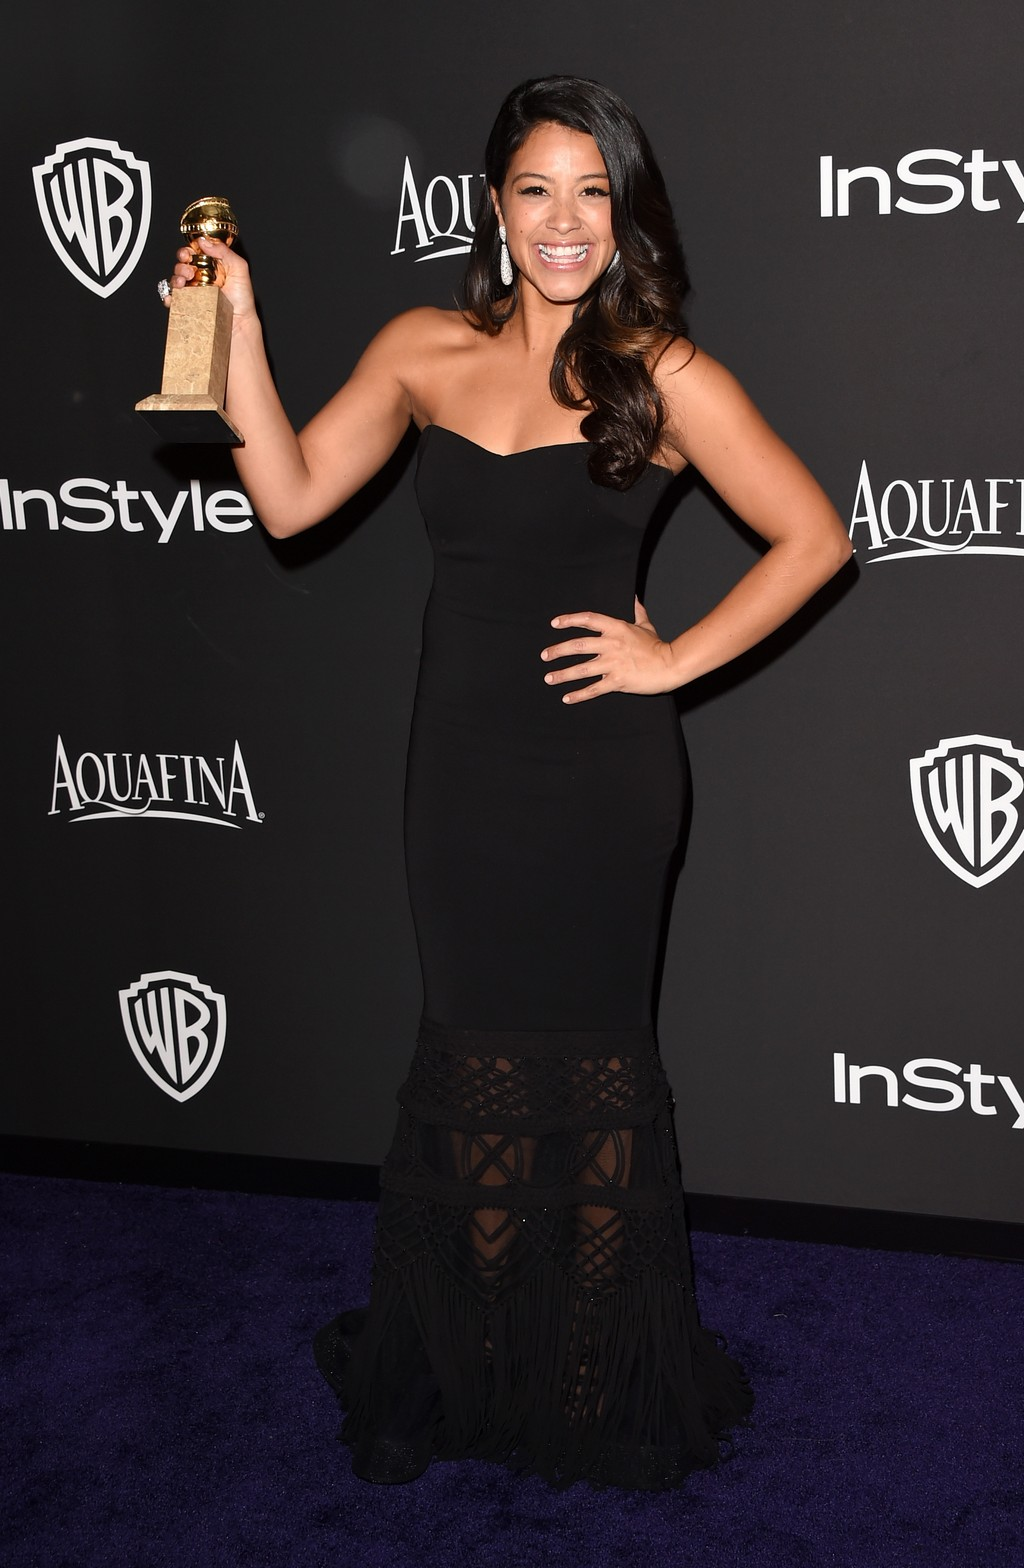 BEVERLY HILLS, CA - JANUARY 11: Actress Gina Rodriguez attends the 2015 InStyle And Warner Bros. 72nd Annual Golden Globe Awards Post-Party at The Beverly Hilton Hotel on January 11, 2015 in Beverly Hills, California. (Photo by Jason Merritt/Getty Images)